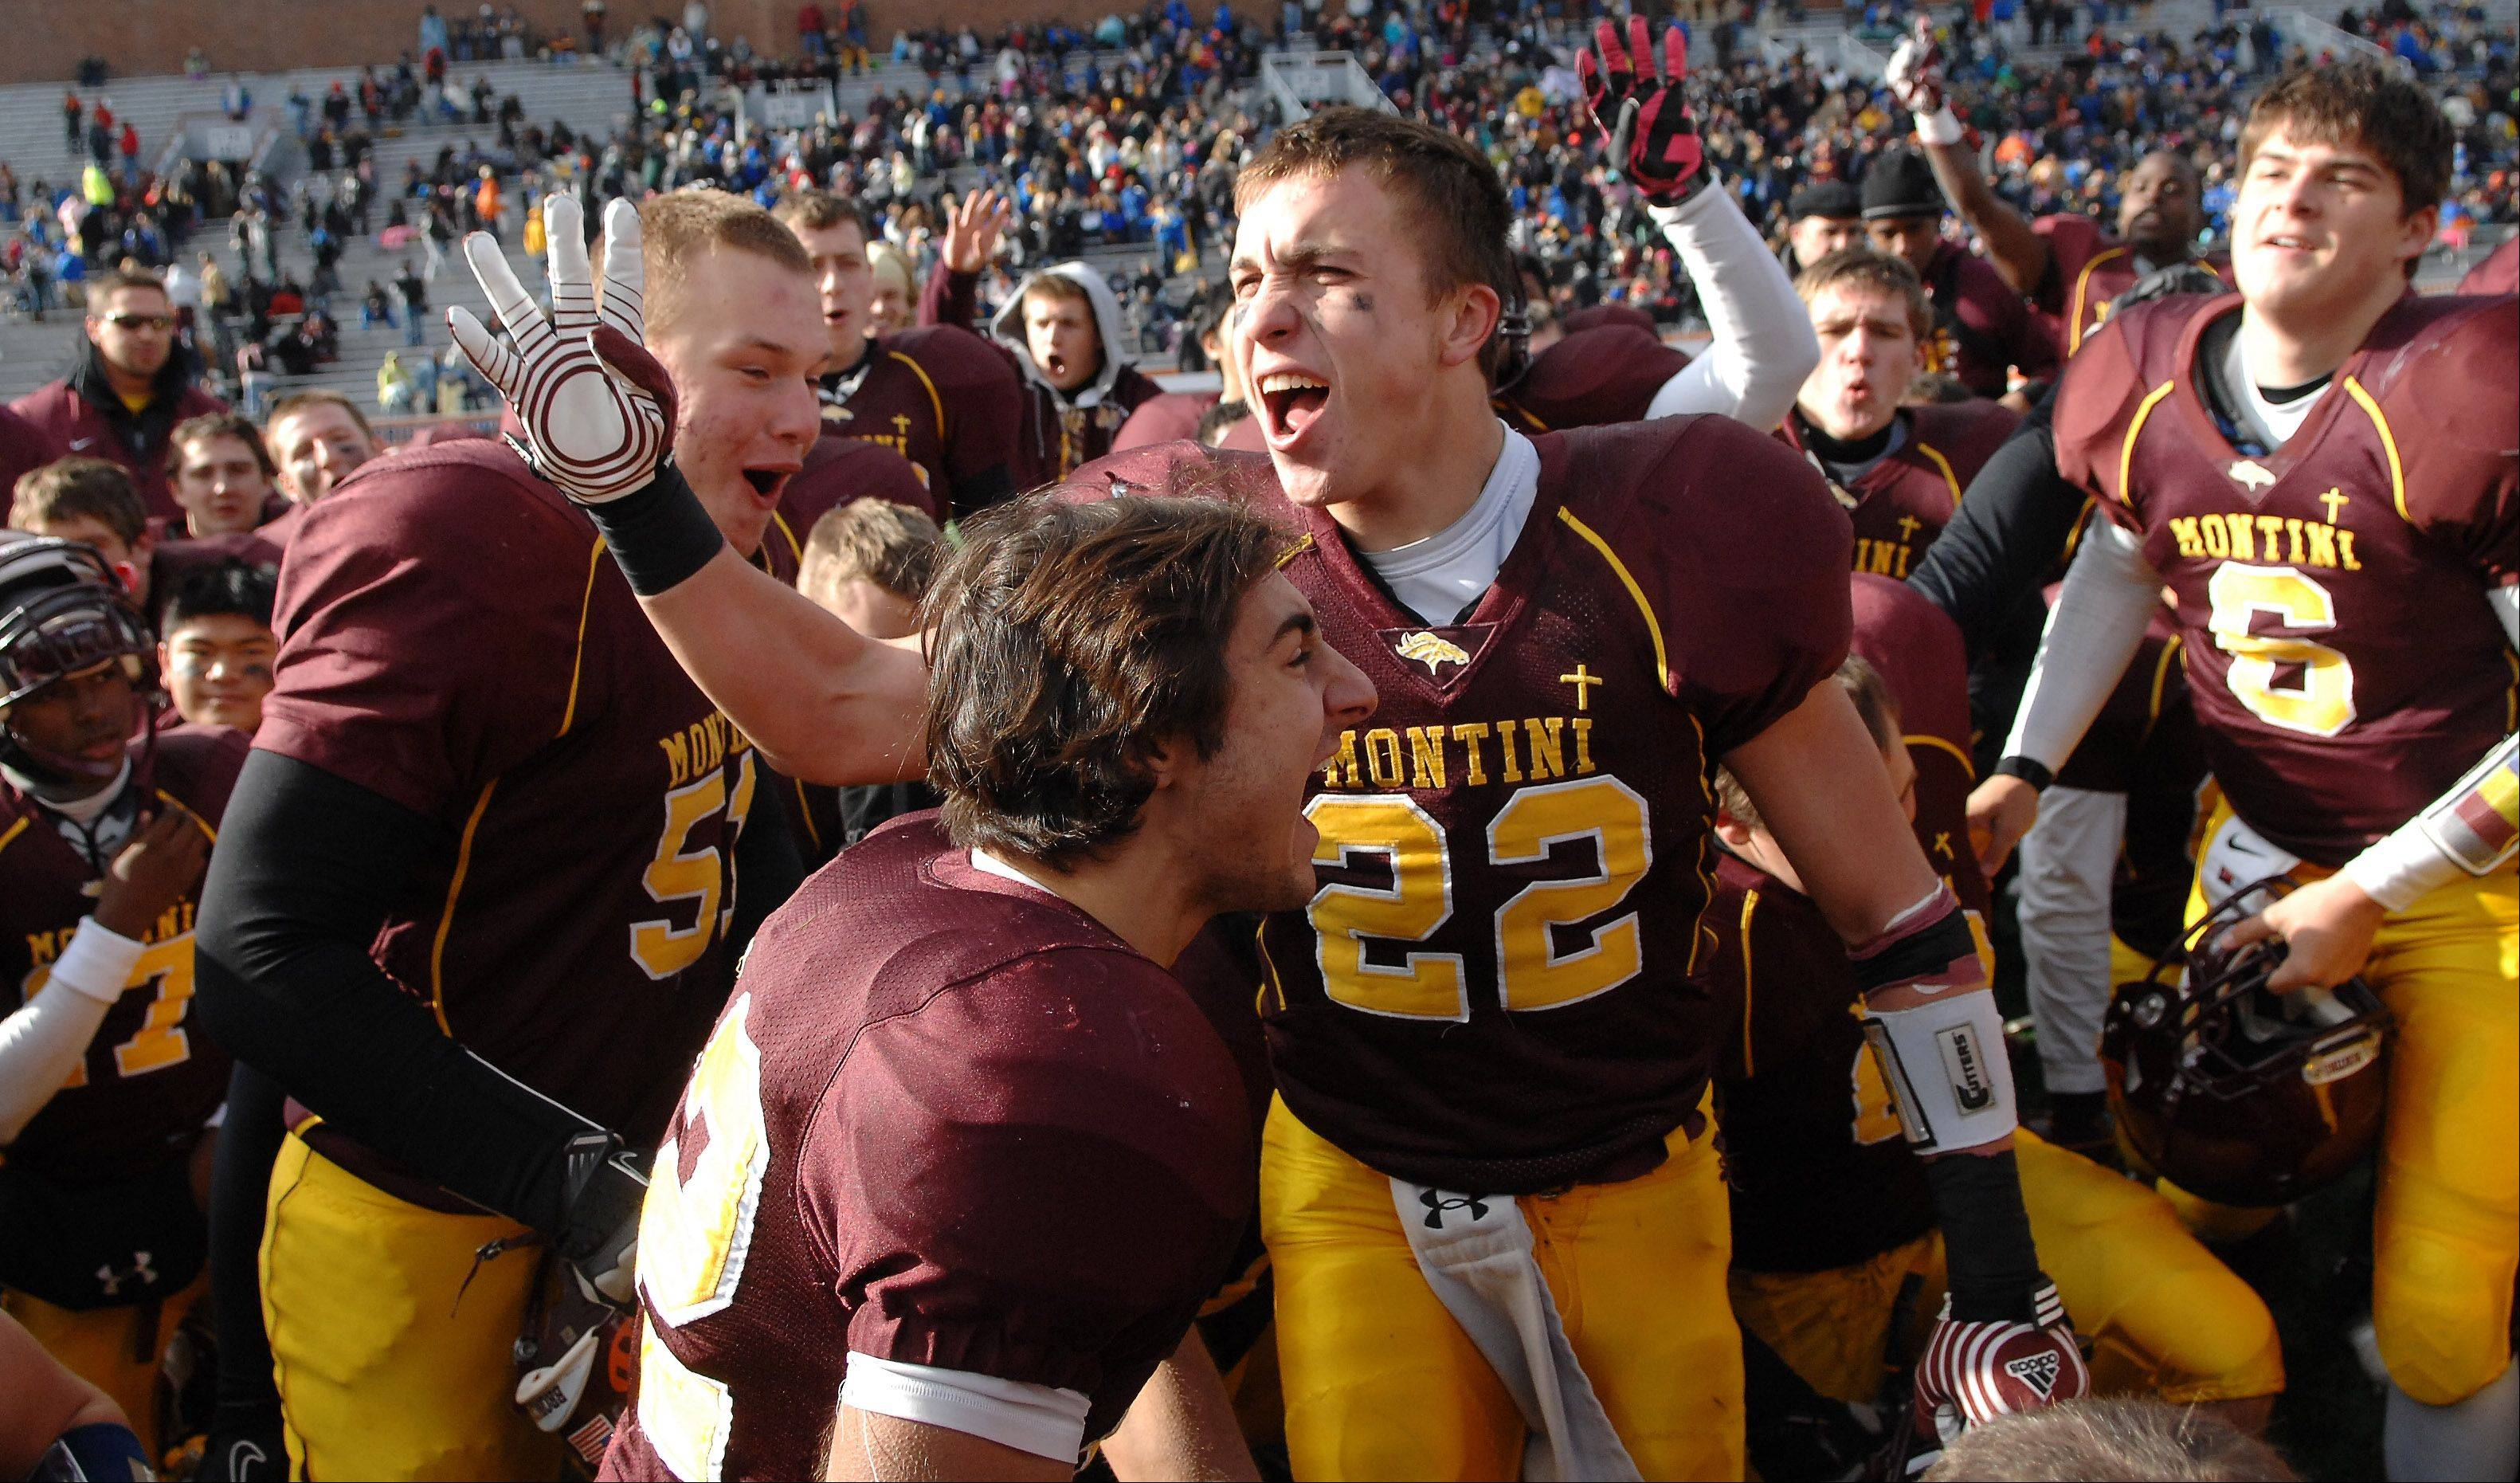 Four straight state titles for Montini